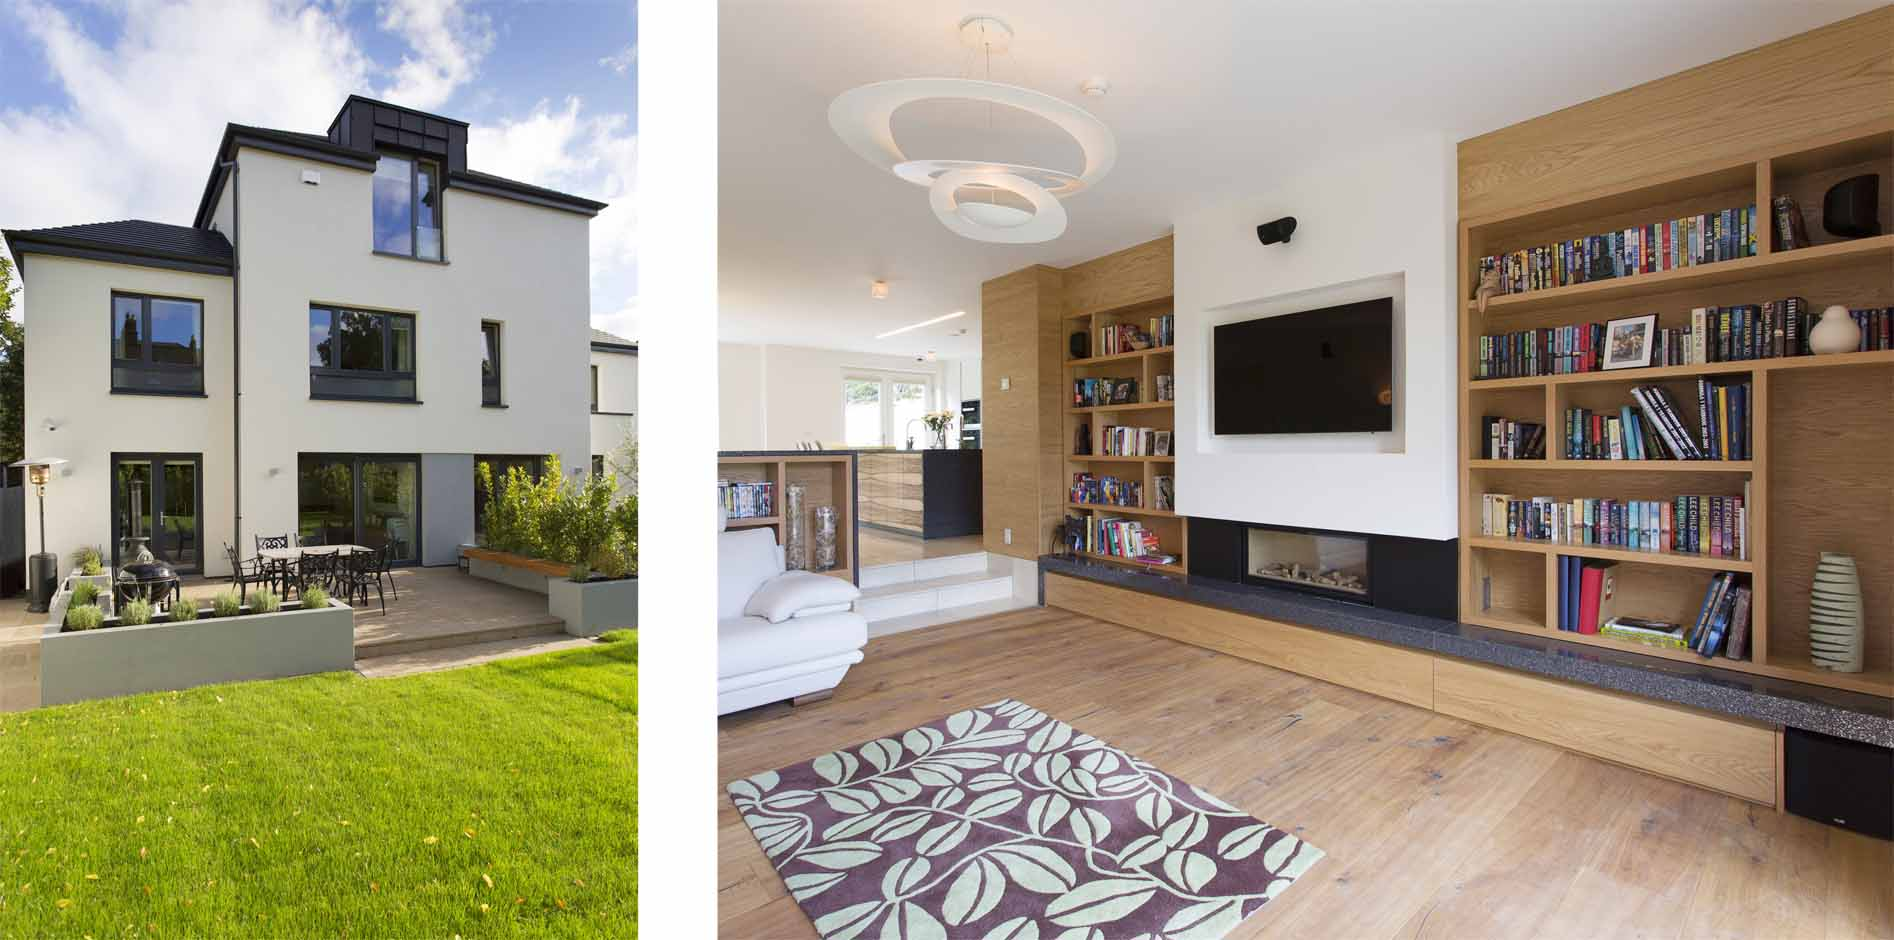 enerphit certification received for house renovation in dublin 4